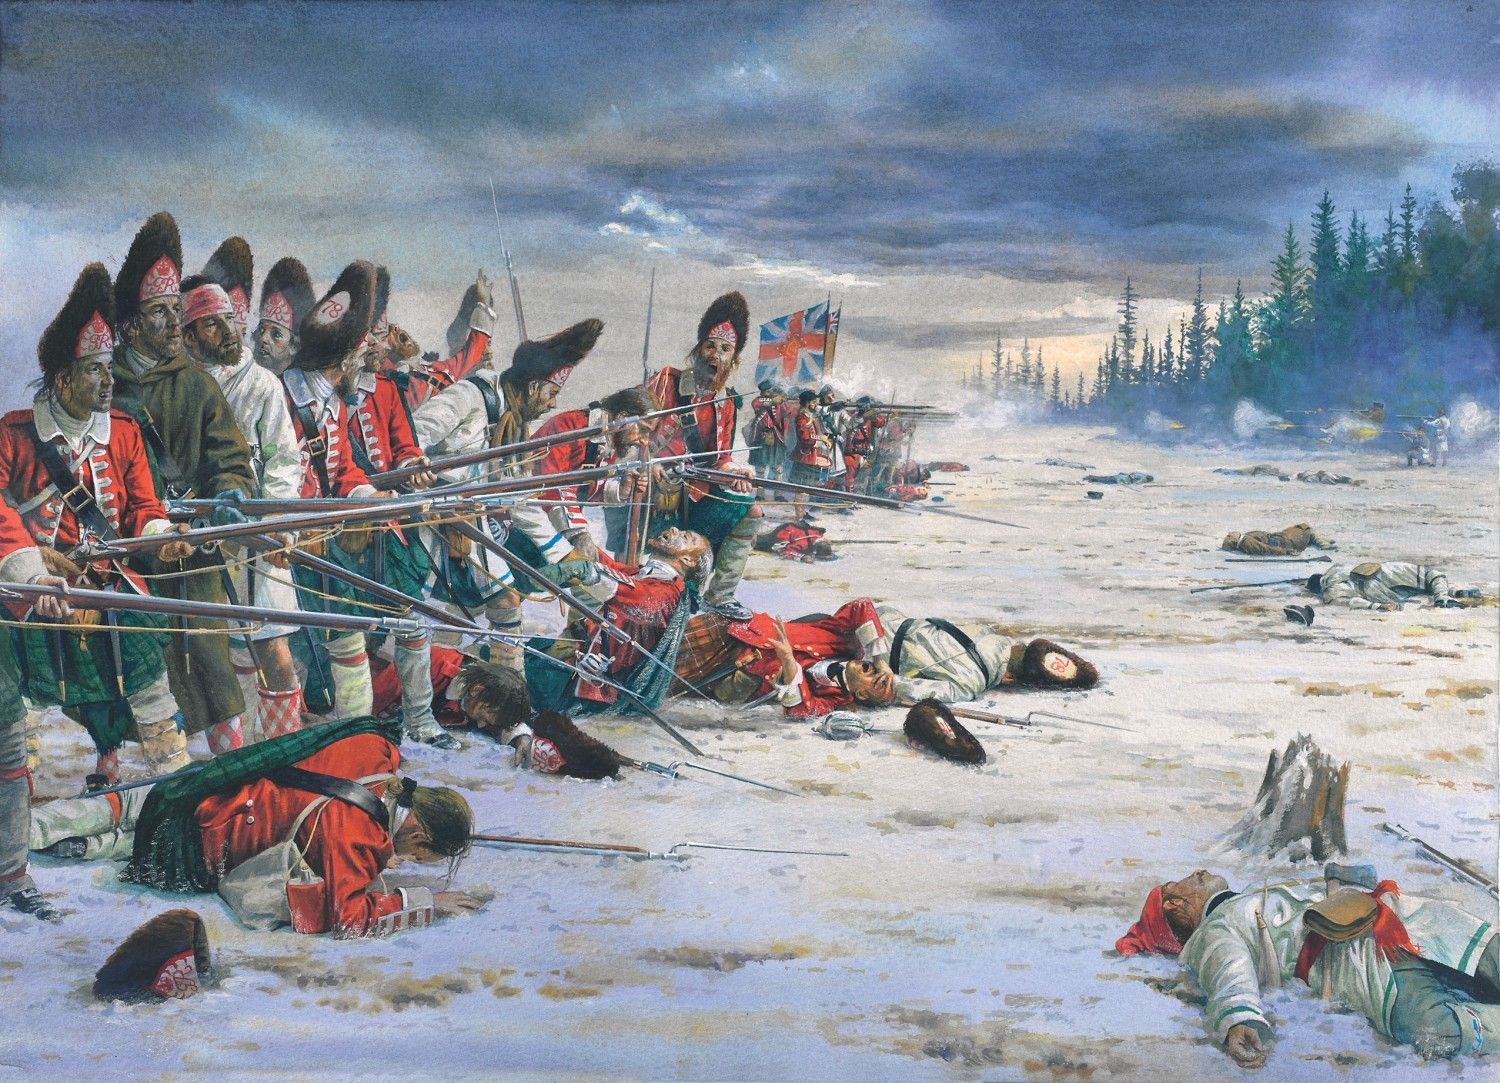 battle of quebec The battle of quebec took place on september 13, 1759 the french army was led by the marquis de montcalm and the english army by major-general james wolfe this was only one battle in what american historians call the french and indian war.